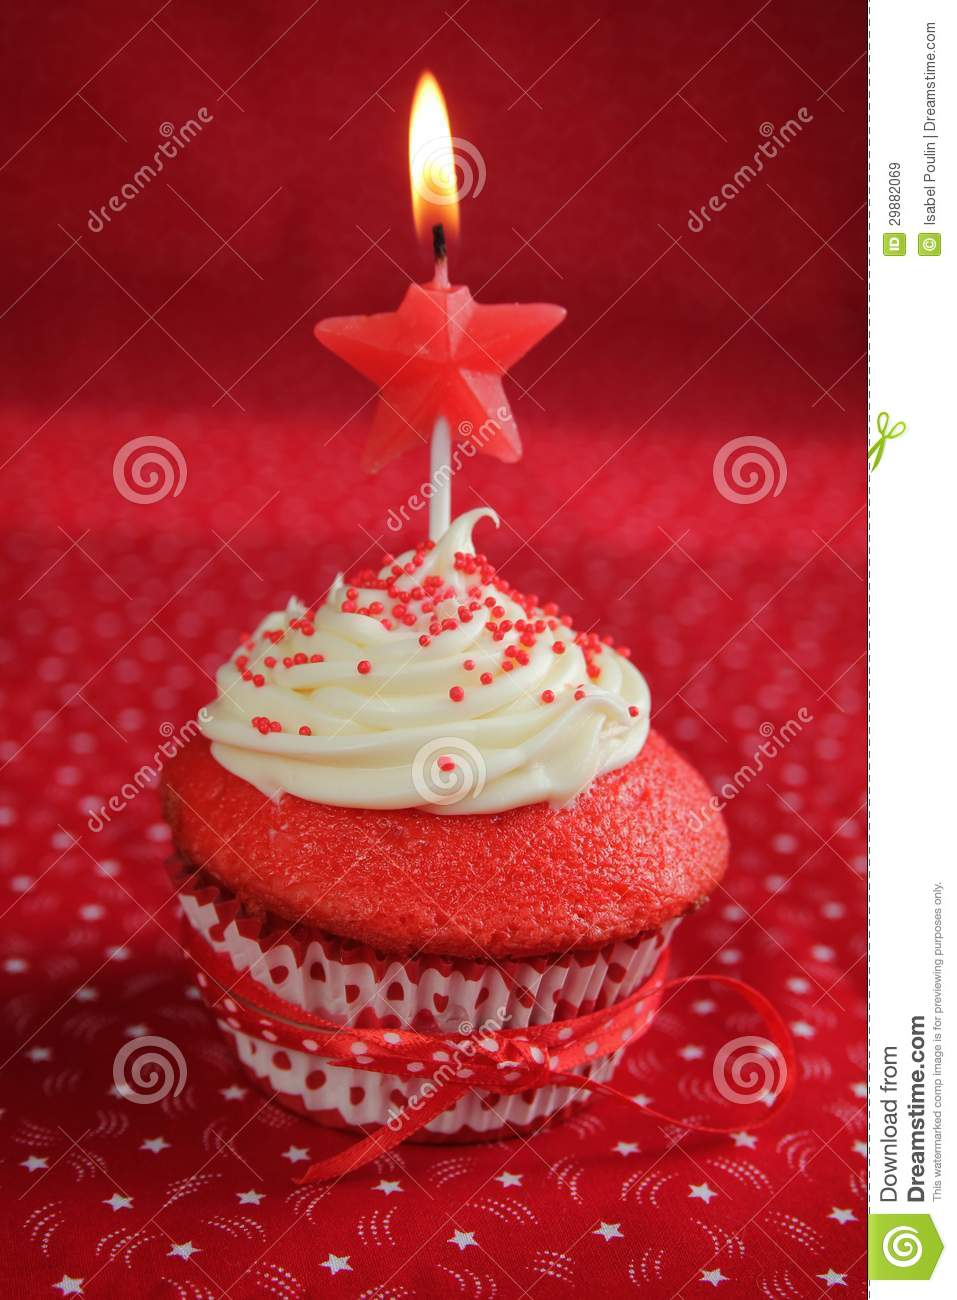 ... Velvet Cupcake Birthday Royalty Free Stock Images - Image: 29882069